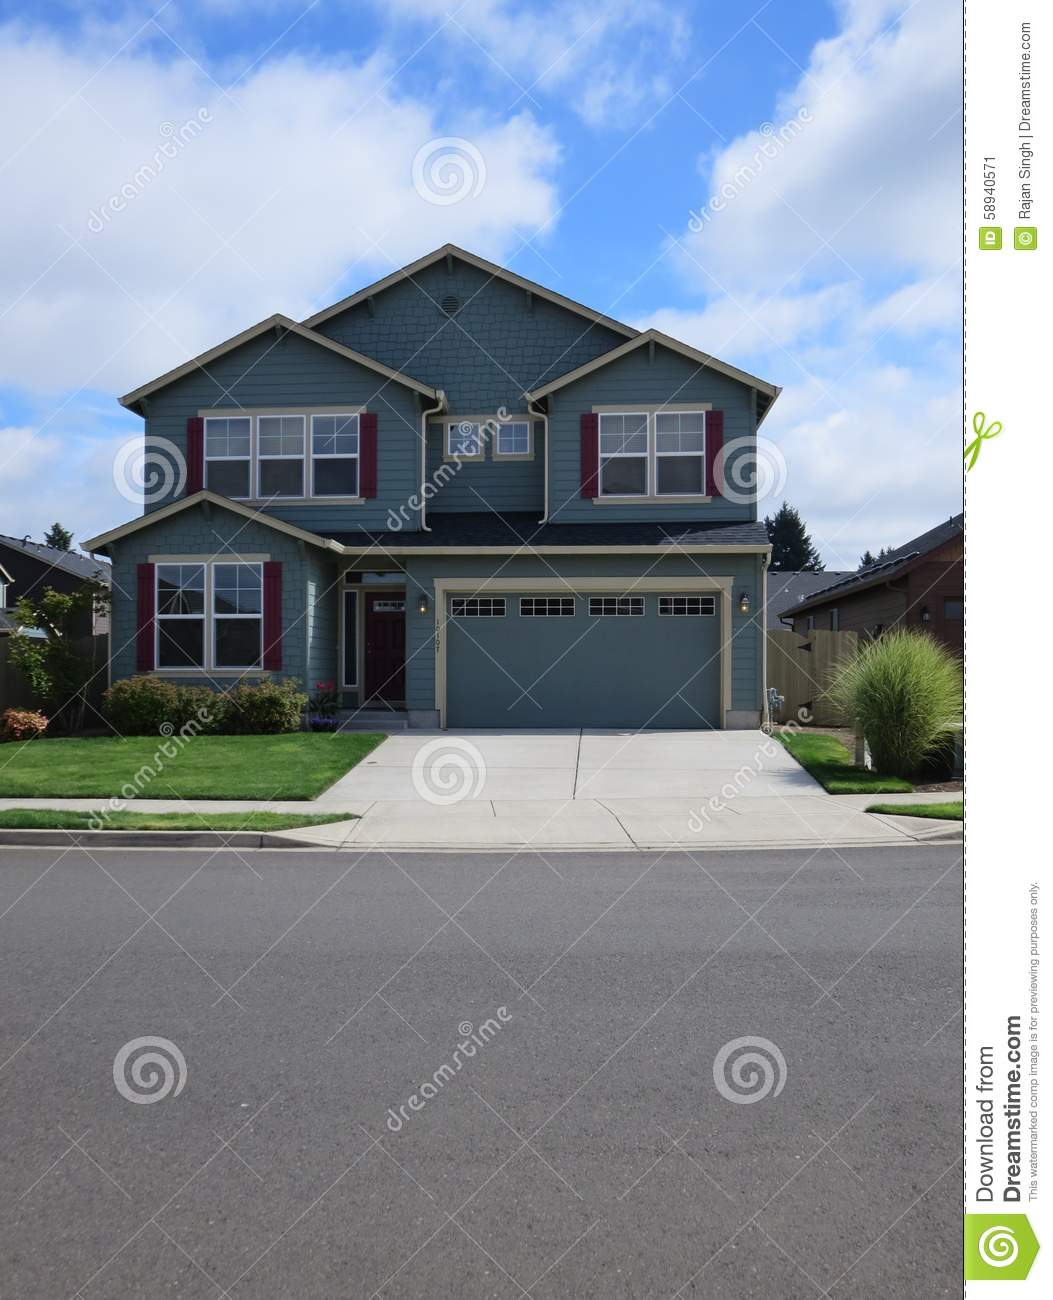 New homes stock photo image 58940571 for New homes america